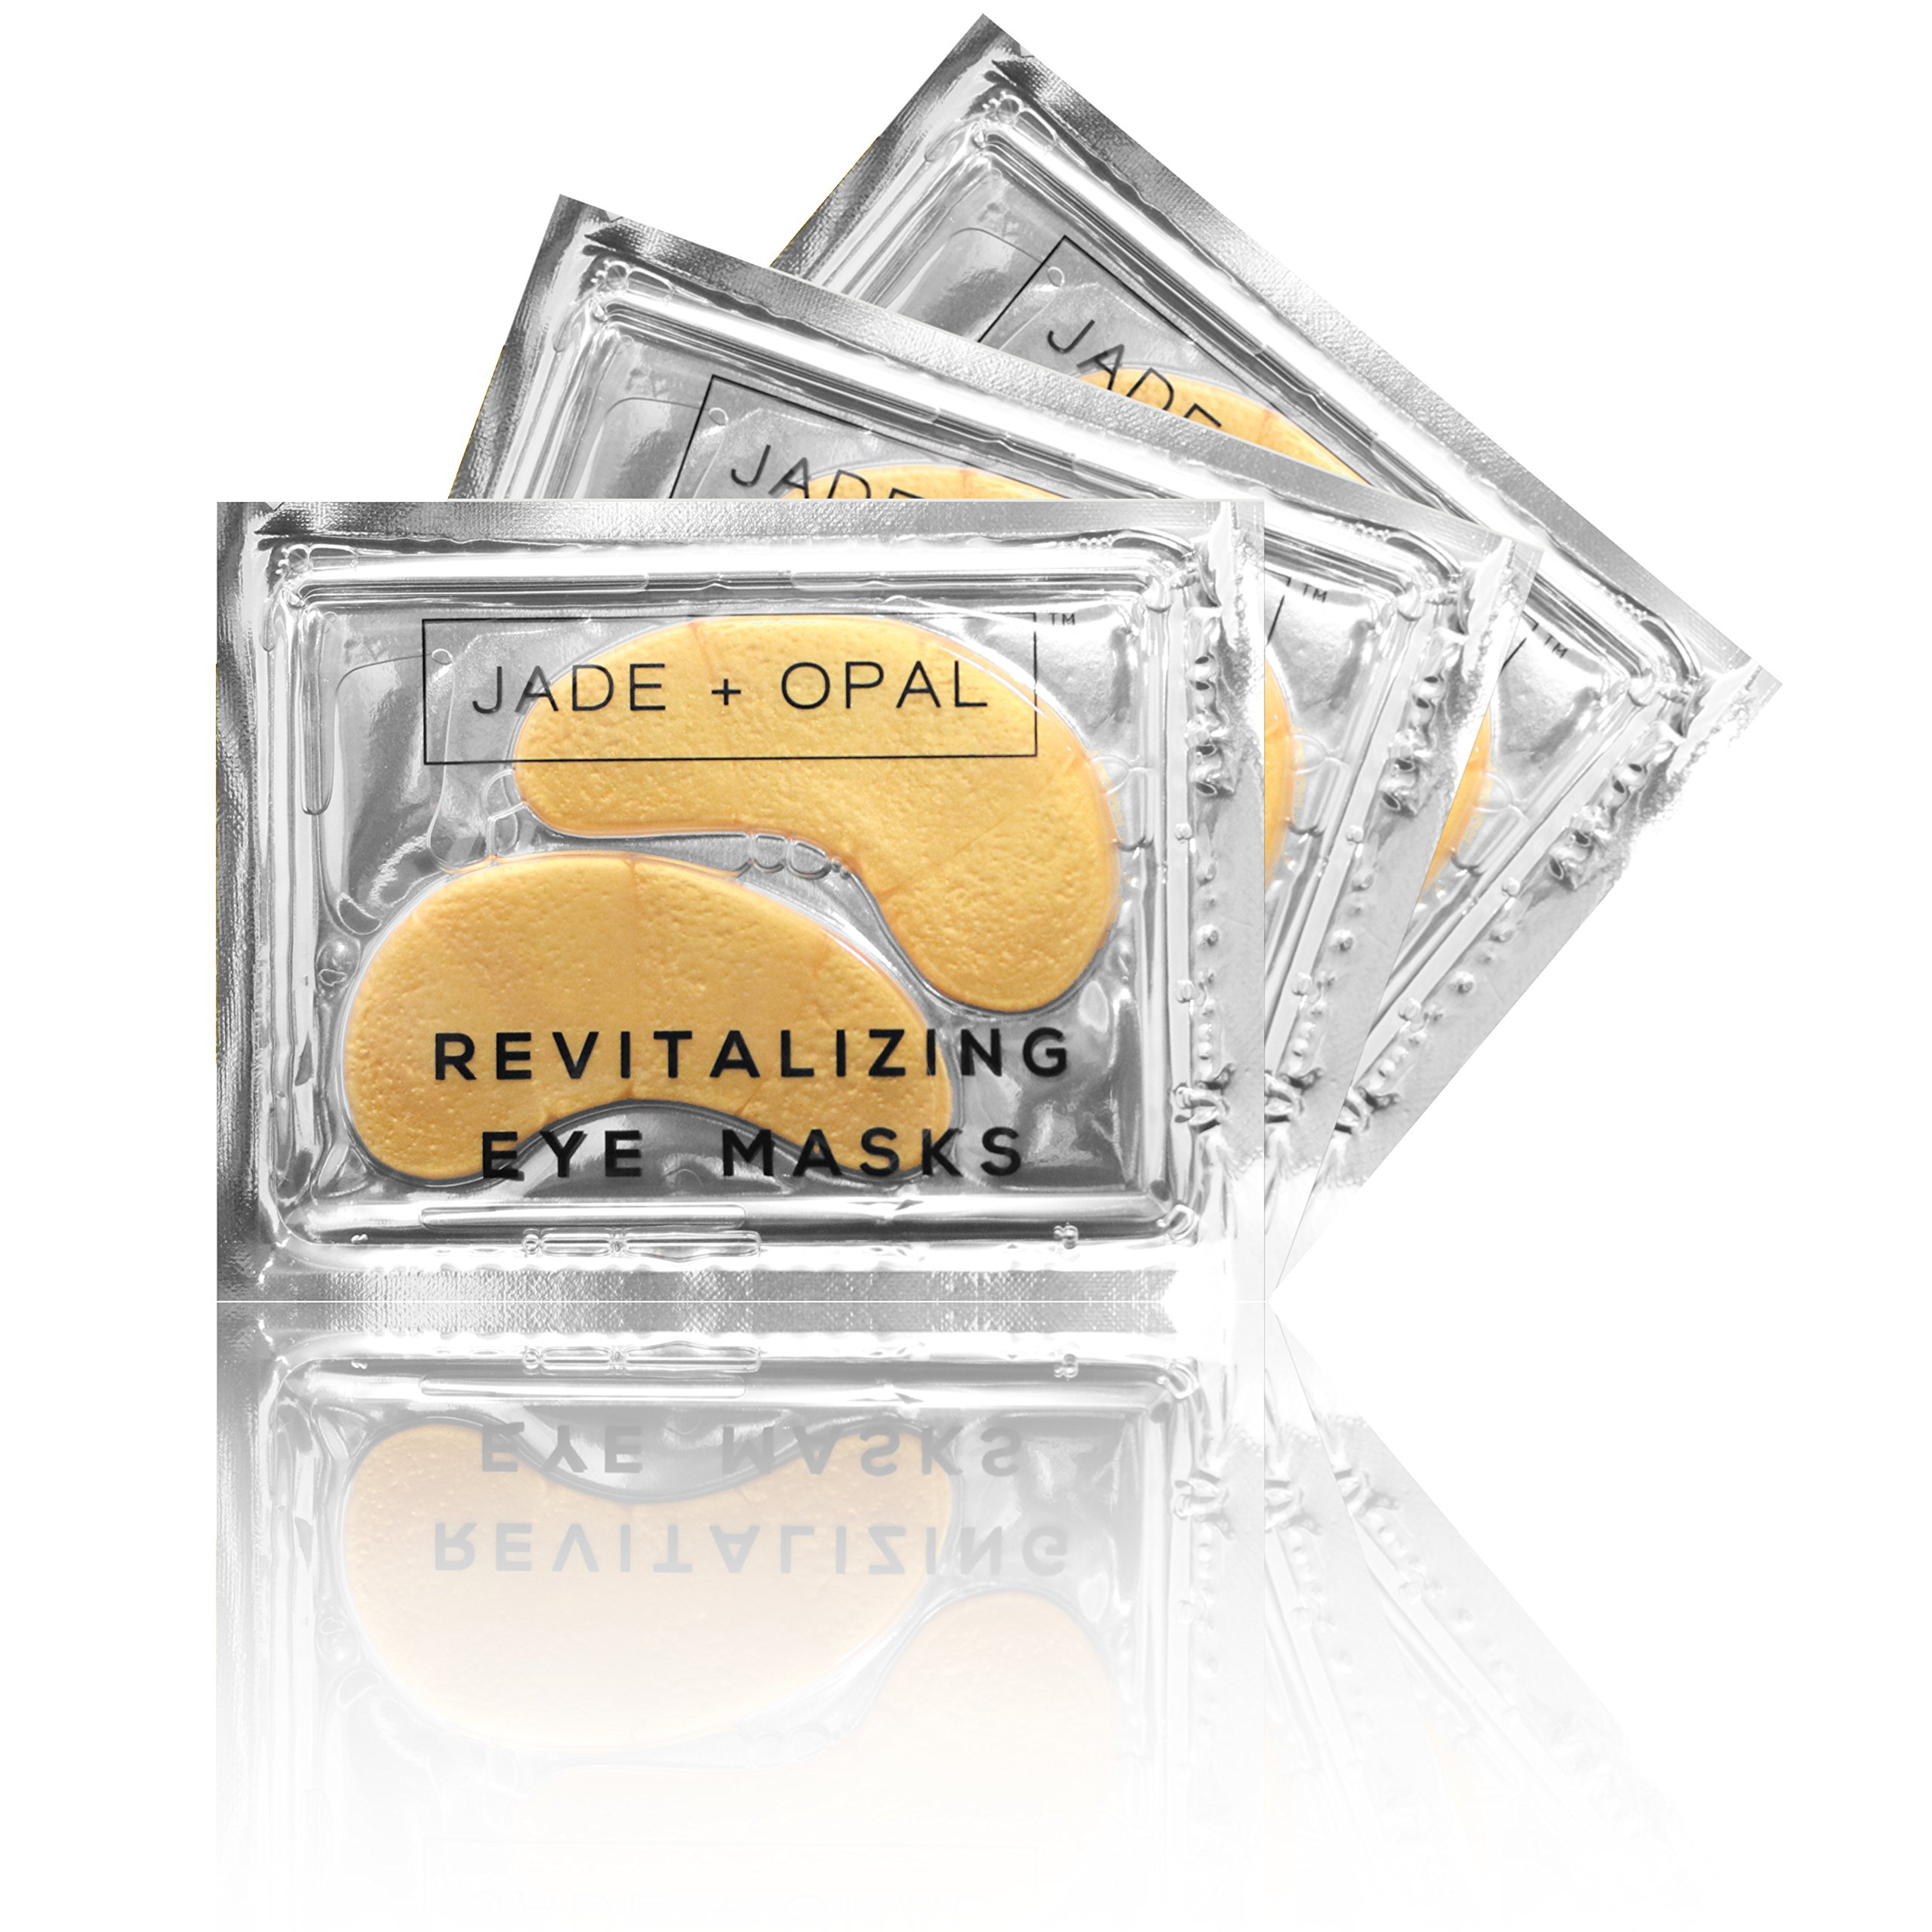 Jade and Opal Gold Collagen Revitalizing Eye Mask, 20 Pairs (Pack of 1) by Jade and Opal (Image #2)